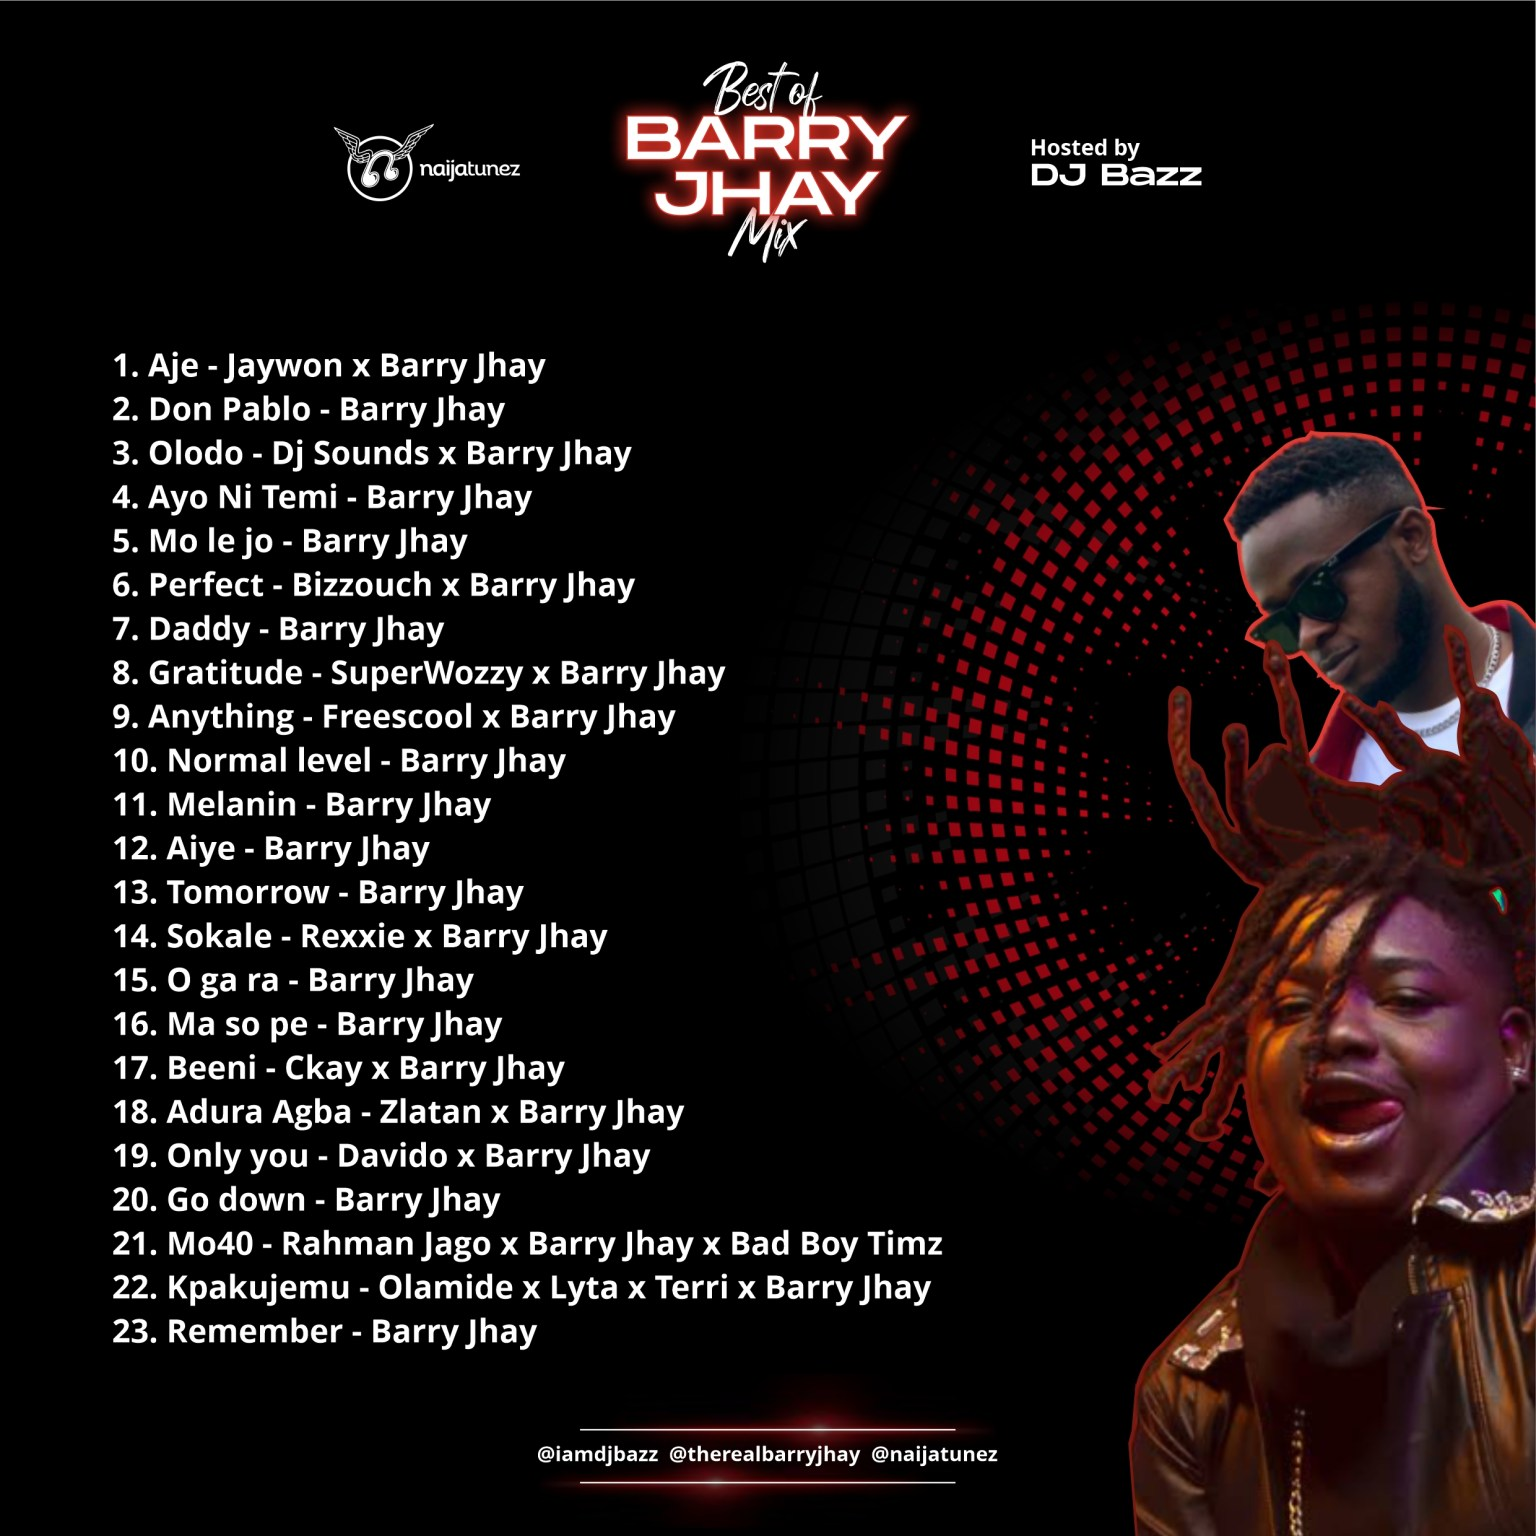 Barry Jhay Mix